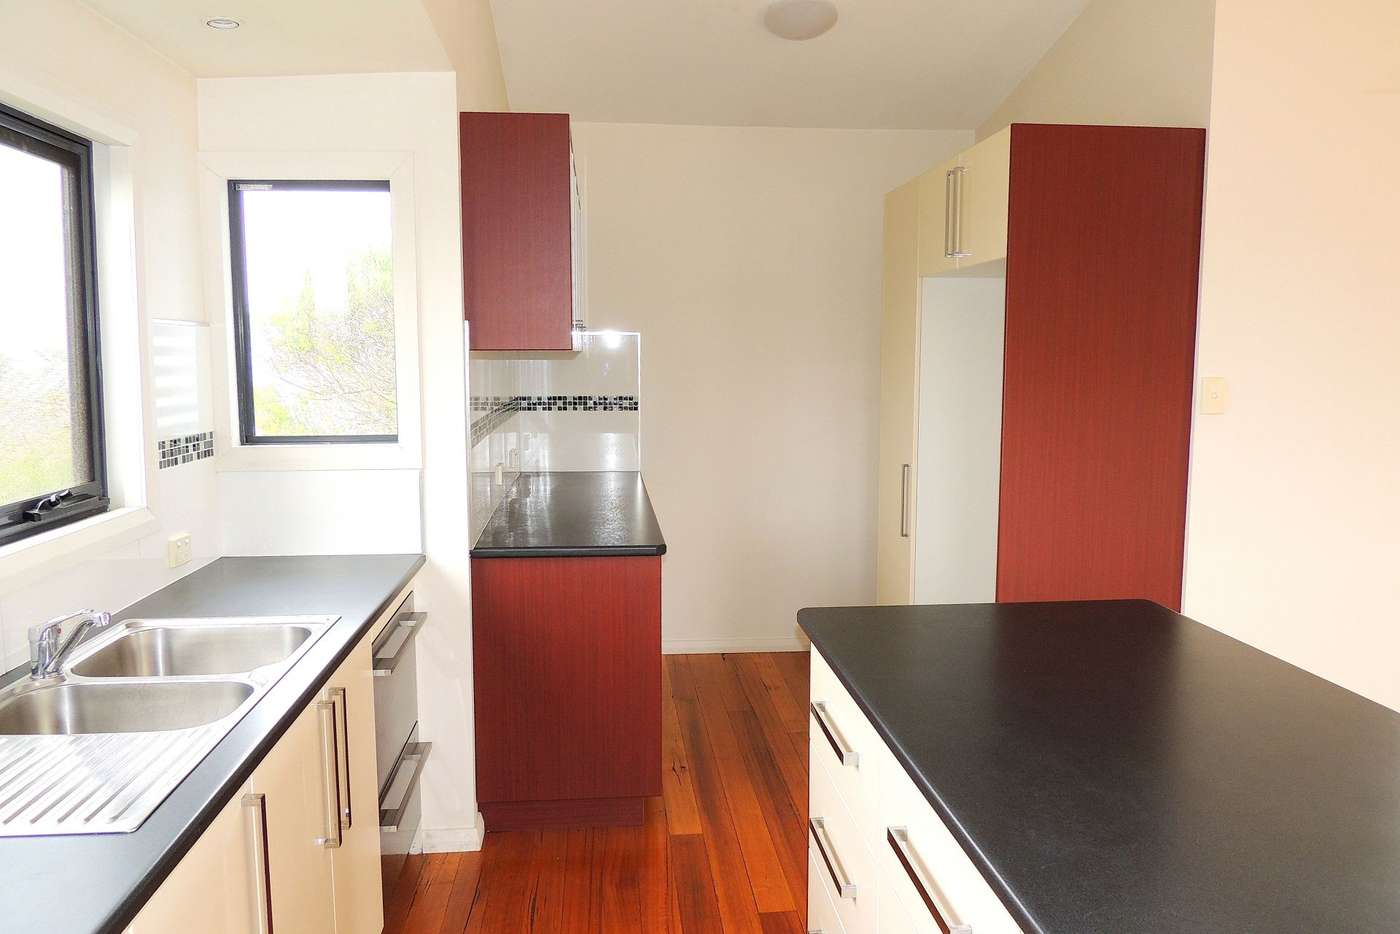 Sixth view of Homely house listing, 4 Templestowe St, Seymour TAS 7215